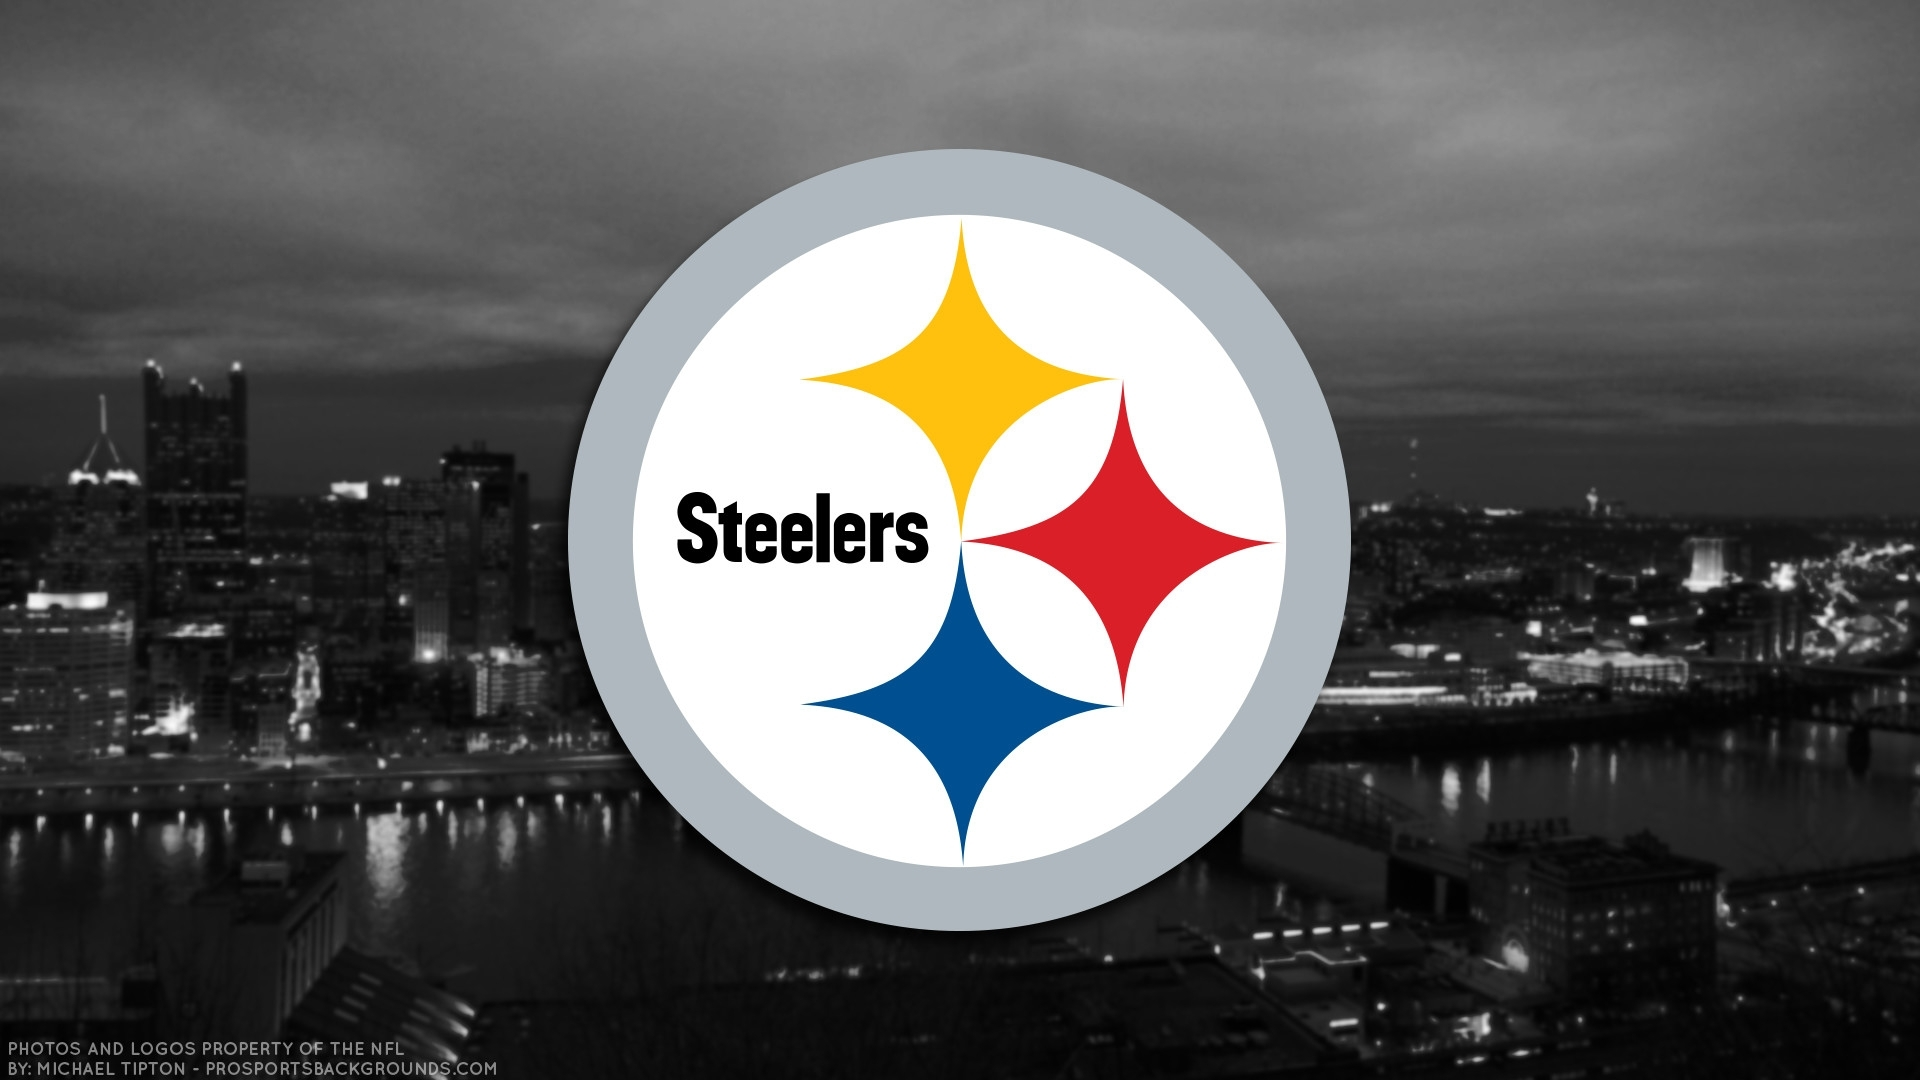 steelers screensavers and wallpaper (69+ images)